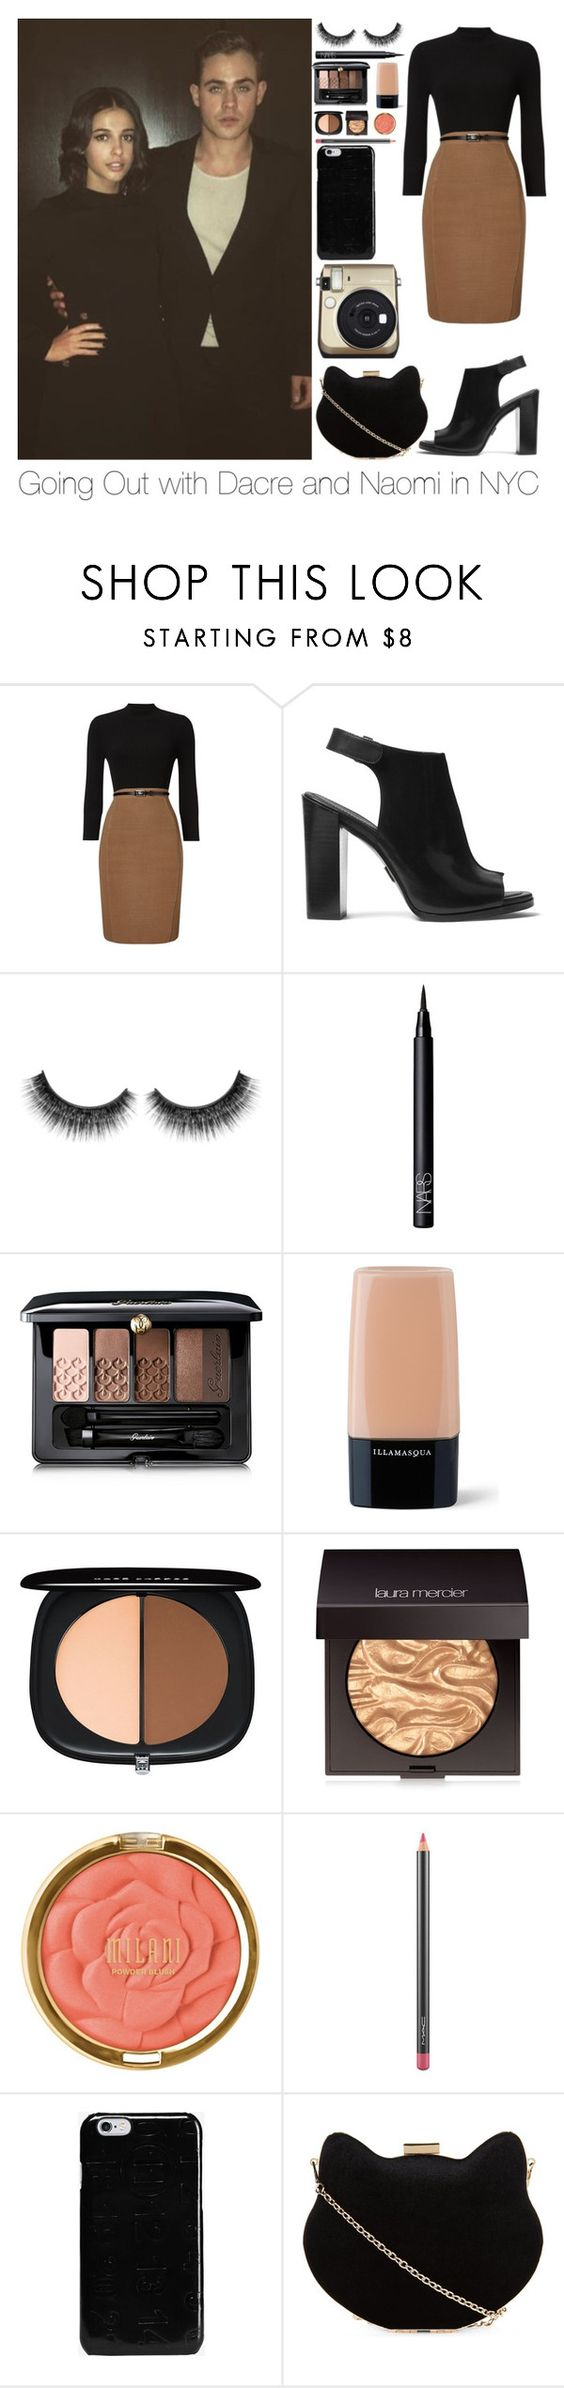 """""""Going Out with Dacre and Naomi in NYC"""" by forever-a-kaitlyn ❤ liked on Polyvore featuring Phase Eight, Michael Kors, NARS Cosmetics, Guerlain, Illamasqua, Marc Jacobs, Laura Mercier, Milani, MAC Cosmetics and Maison Margiela"""